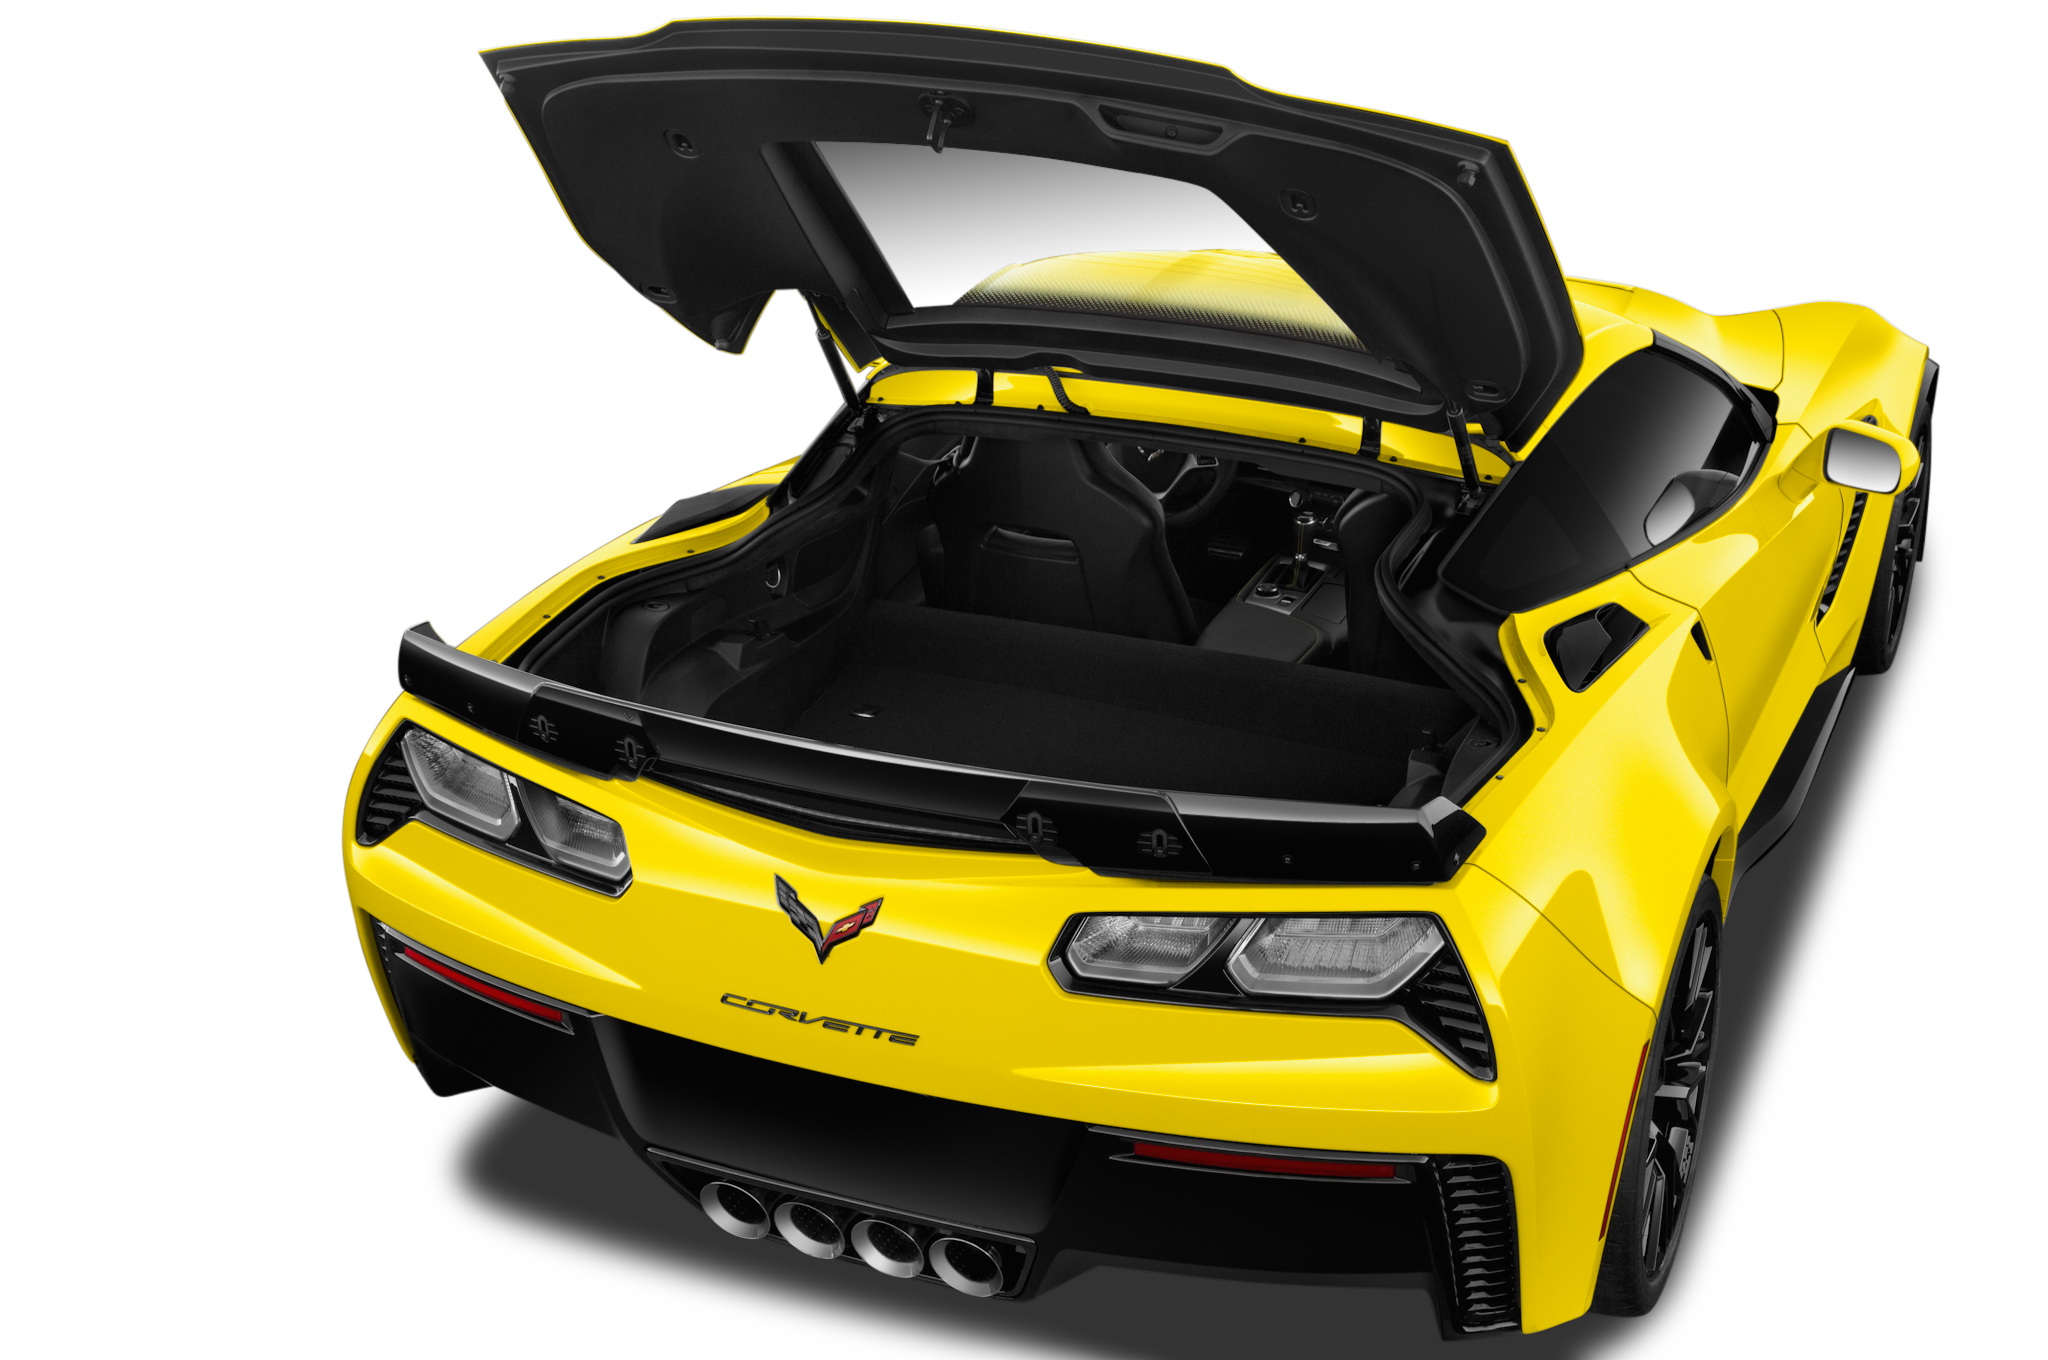 2020 Chevrolet Corvette This Is Almost Certainly The Mid Engine C8